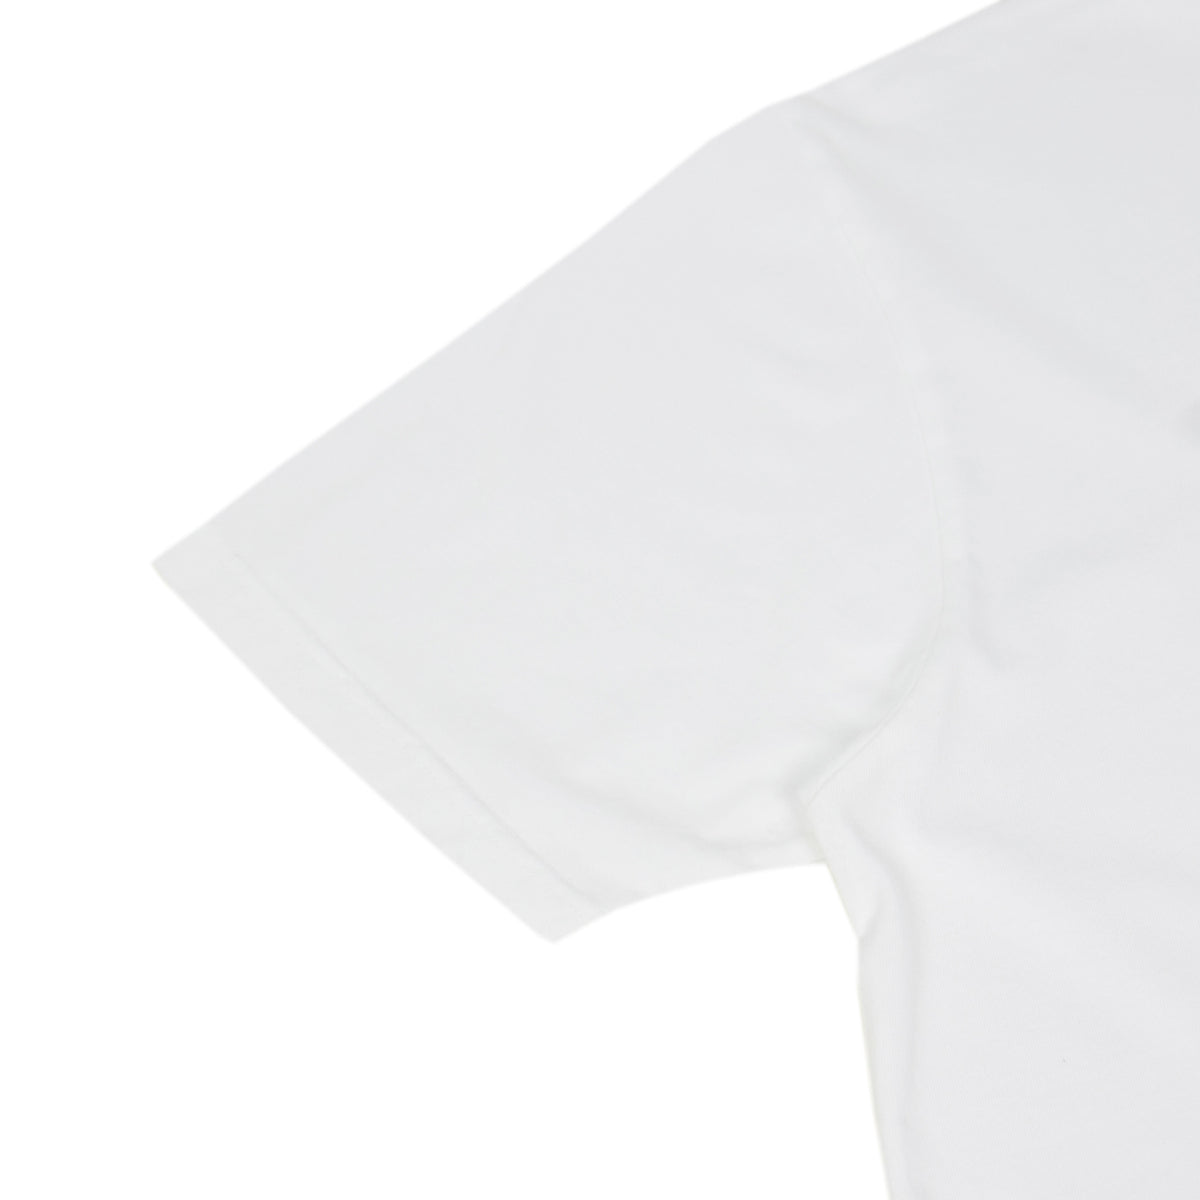 Colorful Standard Organic Cotton Tee Optical White arm